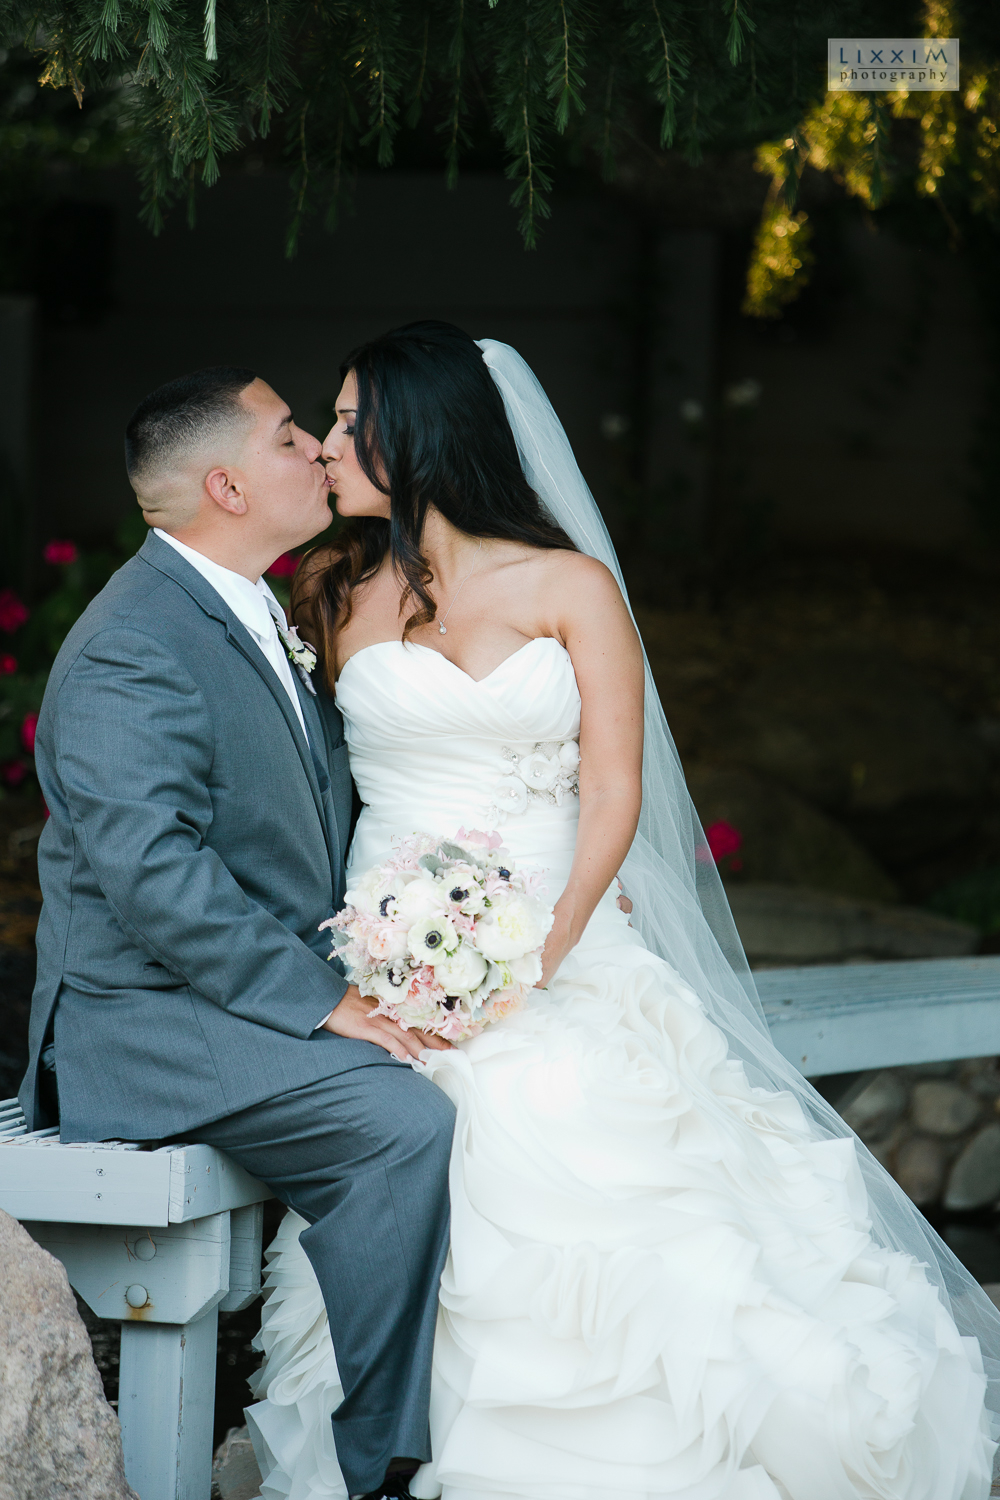 arden-hills-resort-spa-venue-wedding-sacramento-california-lixxim